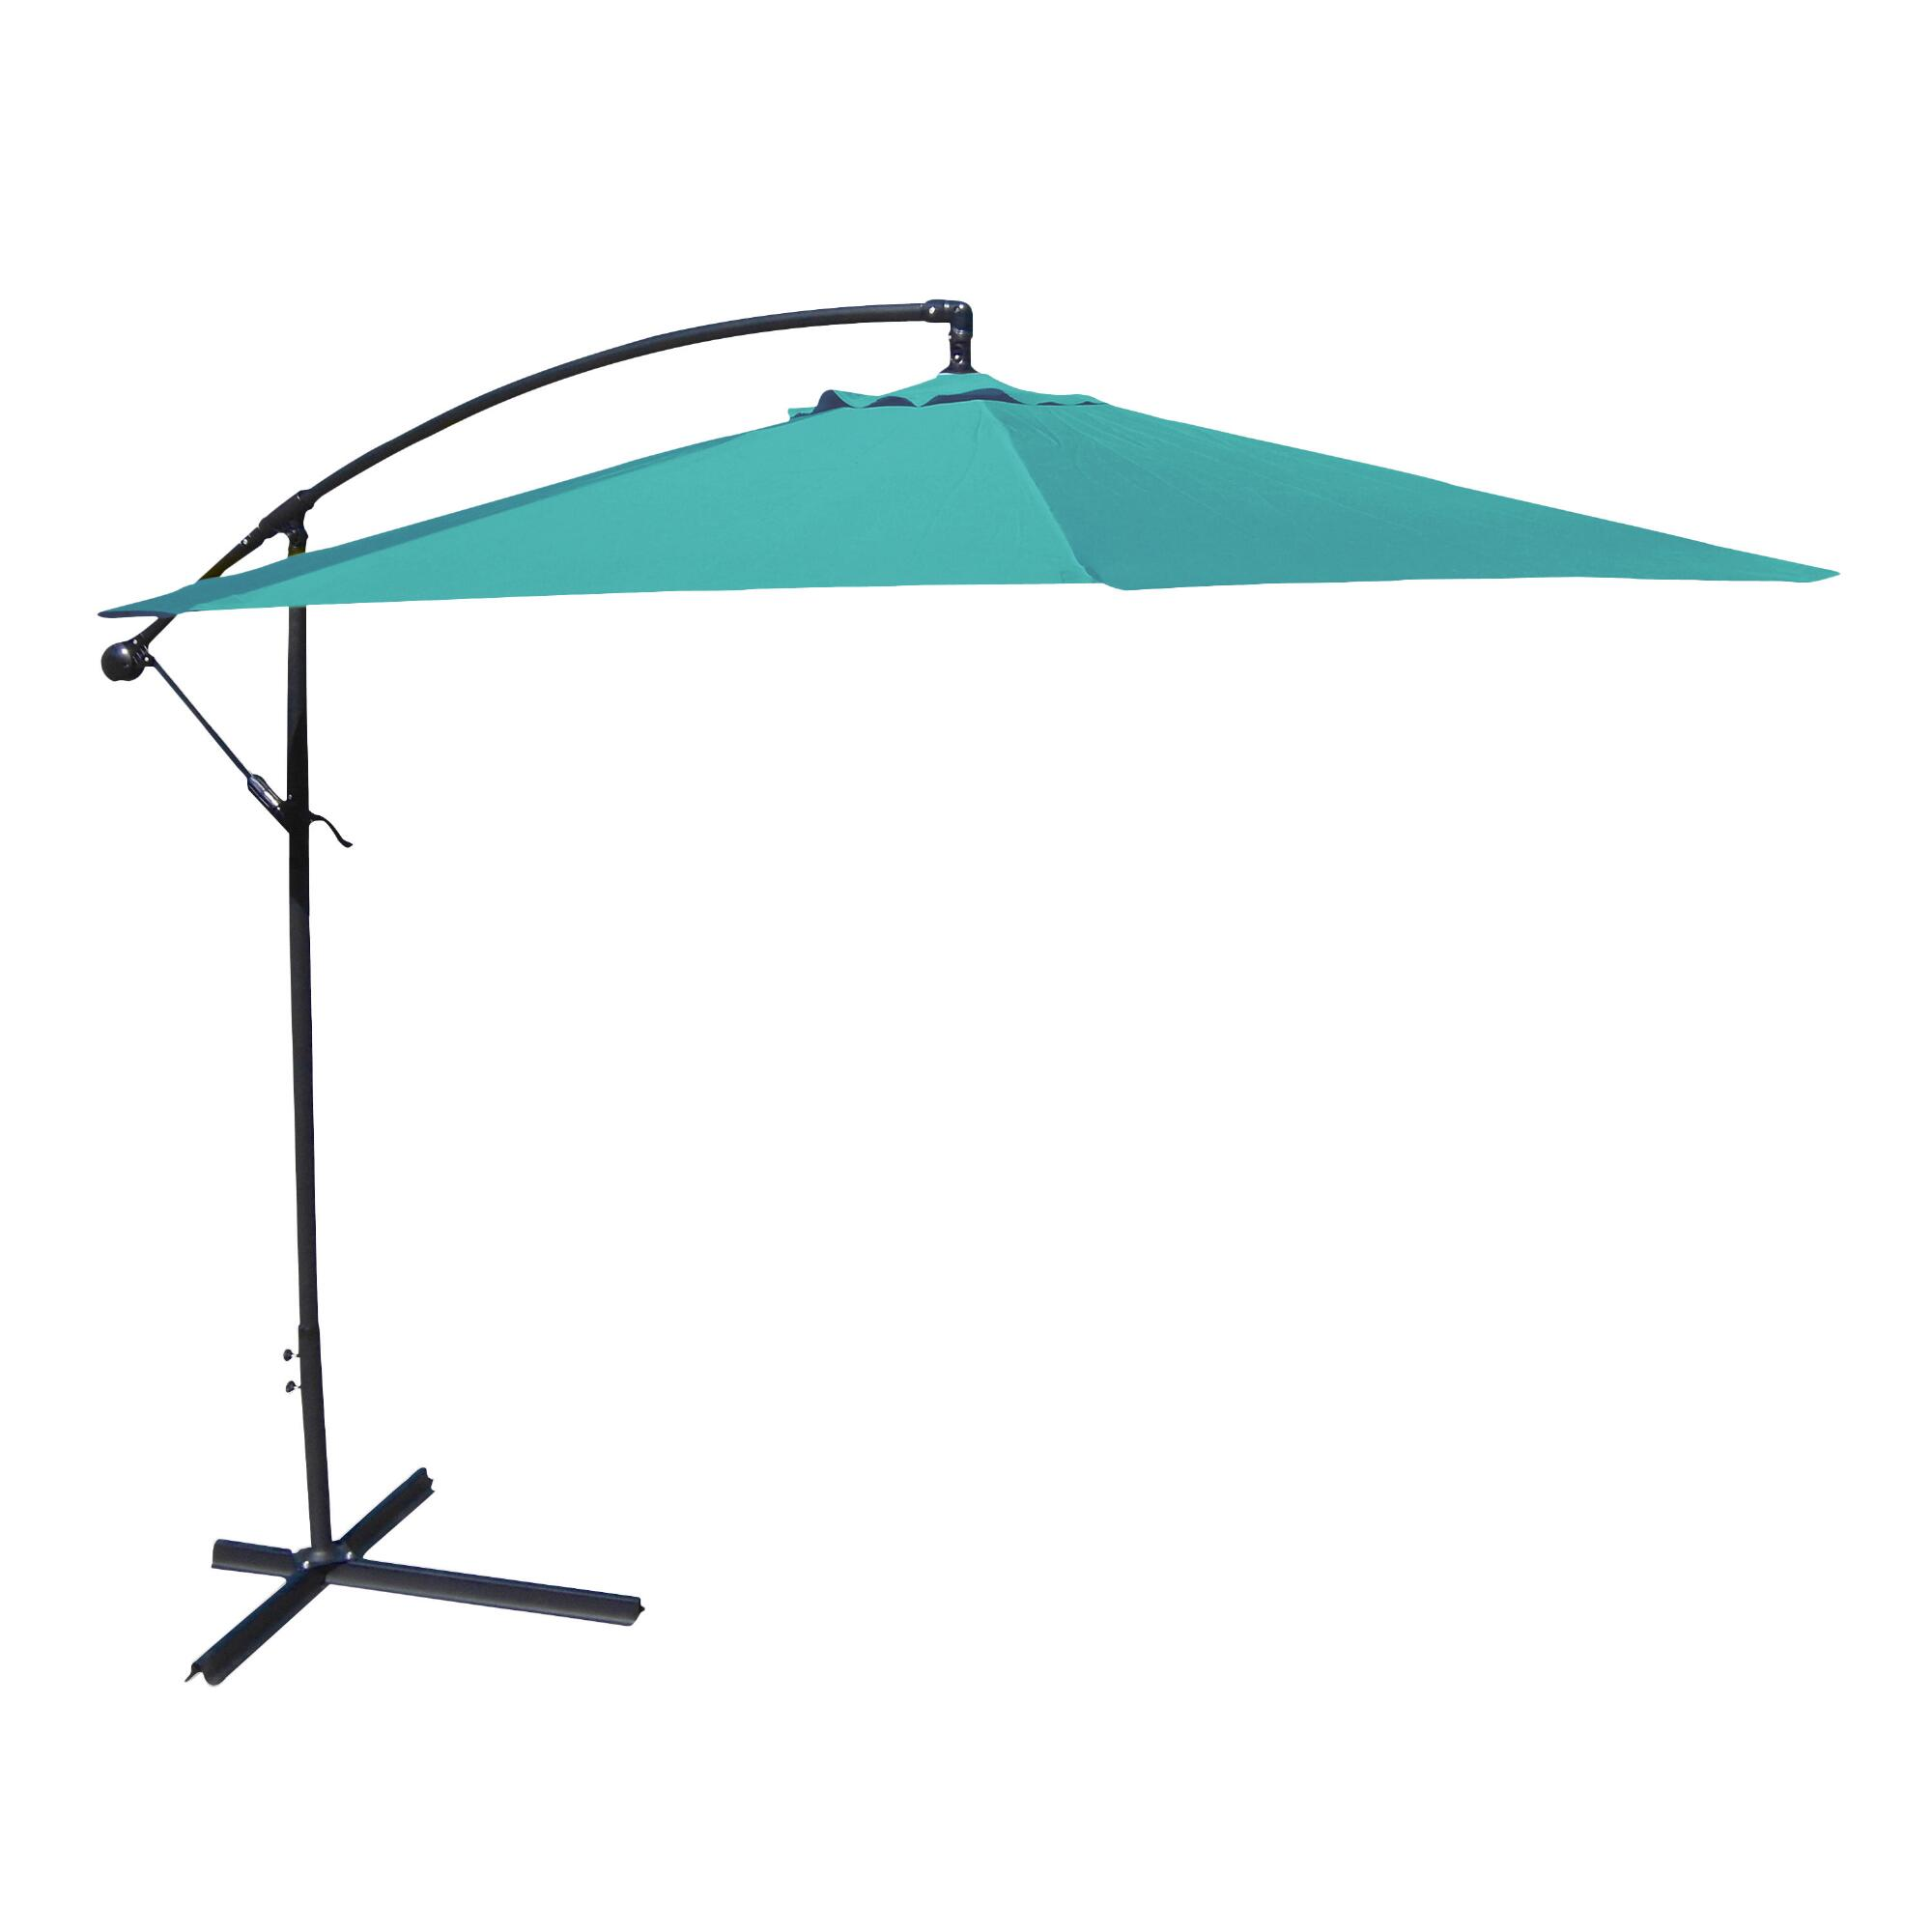 Aruba Turquoise 10 Ft Cantilever Outdoor Patio Umbrella: Blue - Fabric by World Market